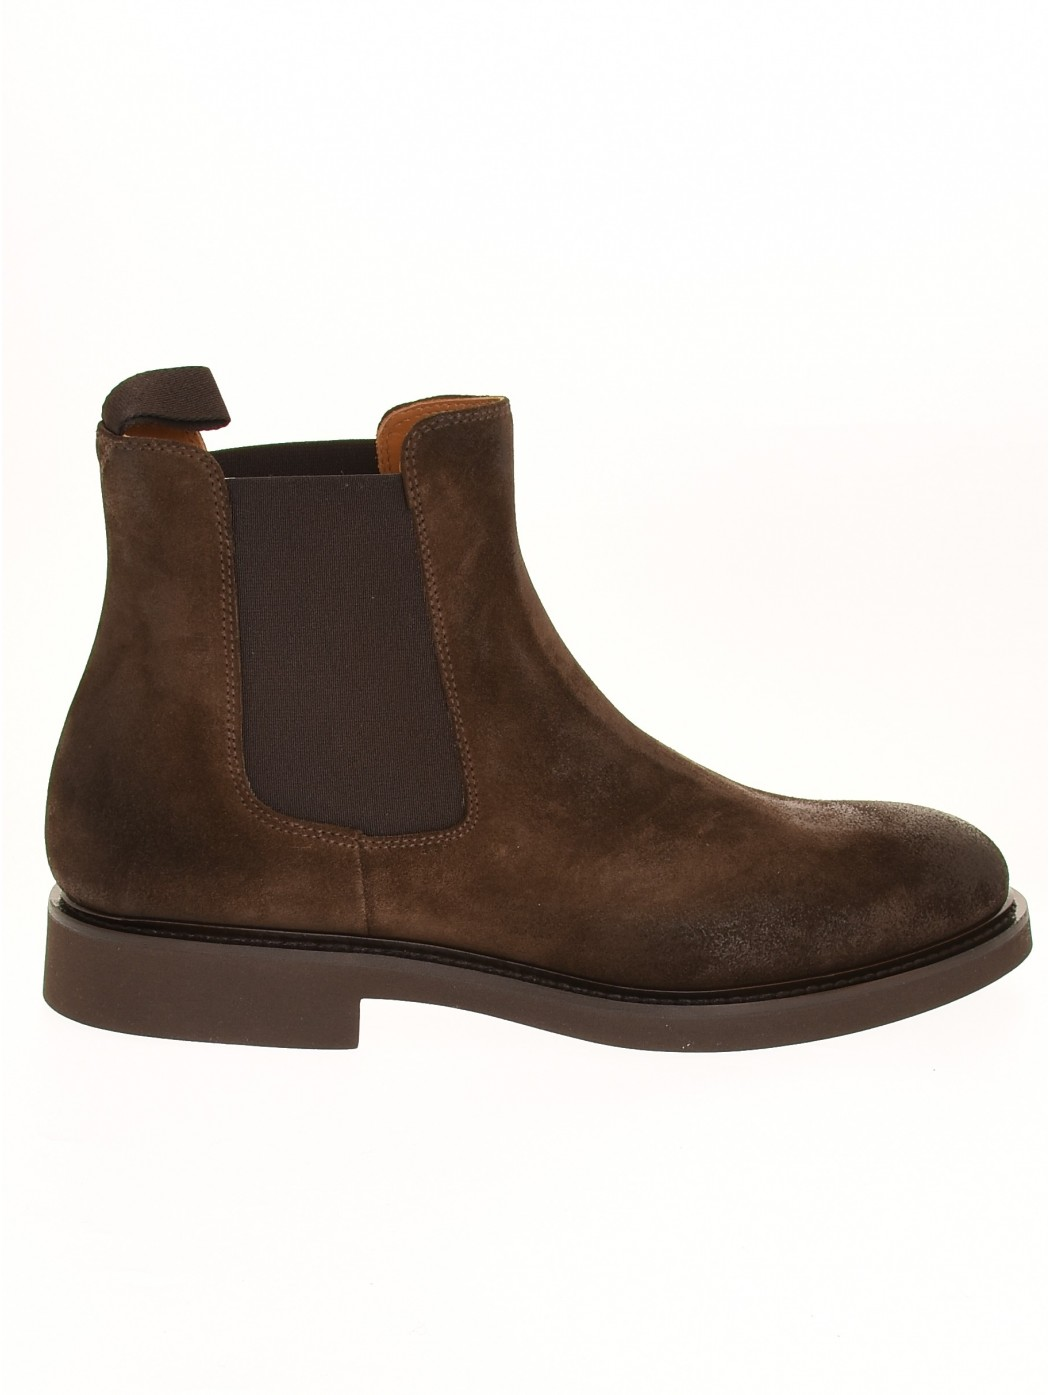 CHELSEA BOOT DOUCALS DU1343GENOUF011 TM00